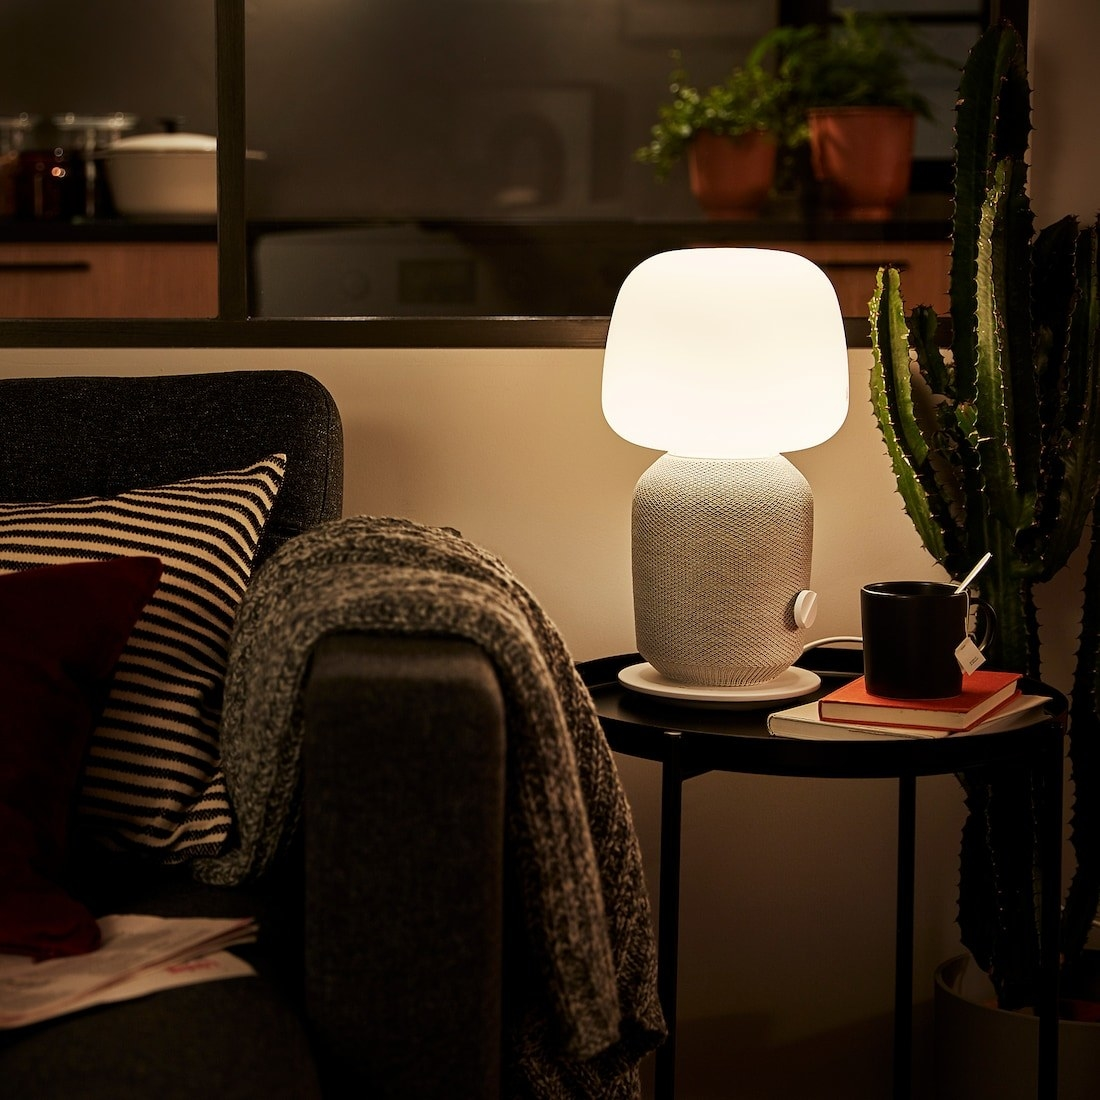 a table lamp with a built-in speaker